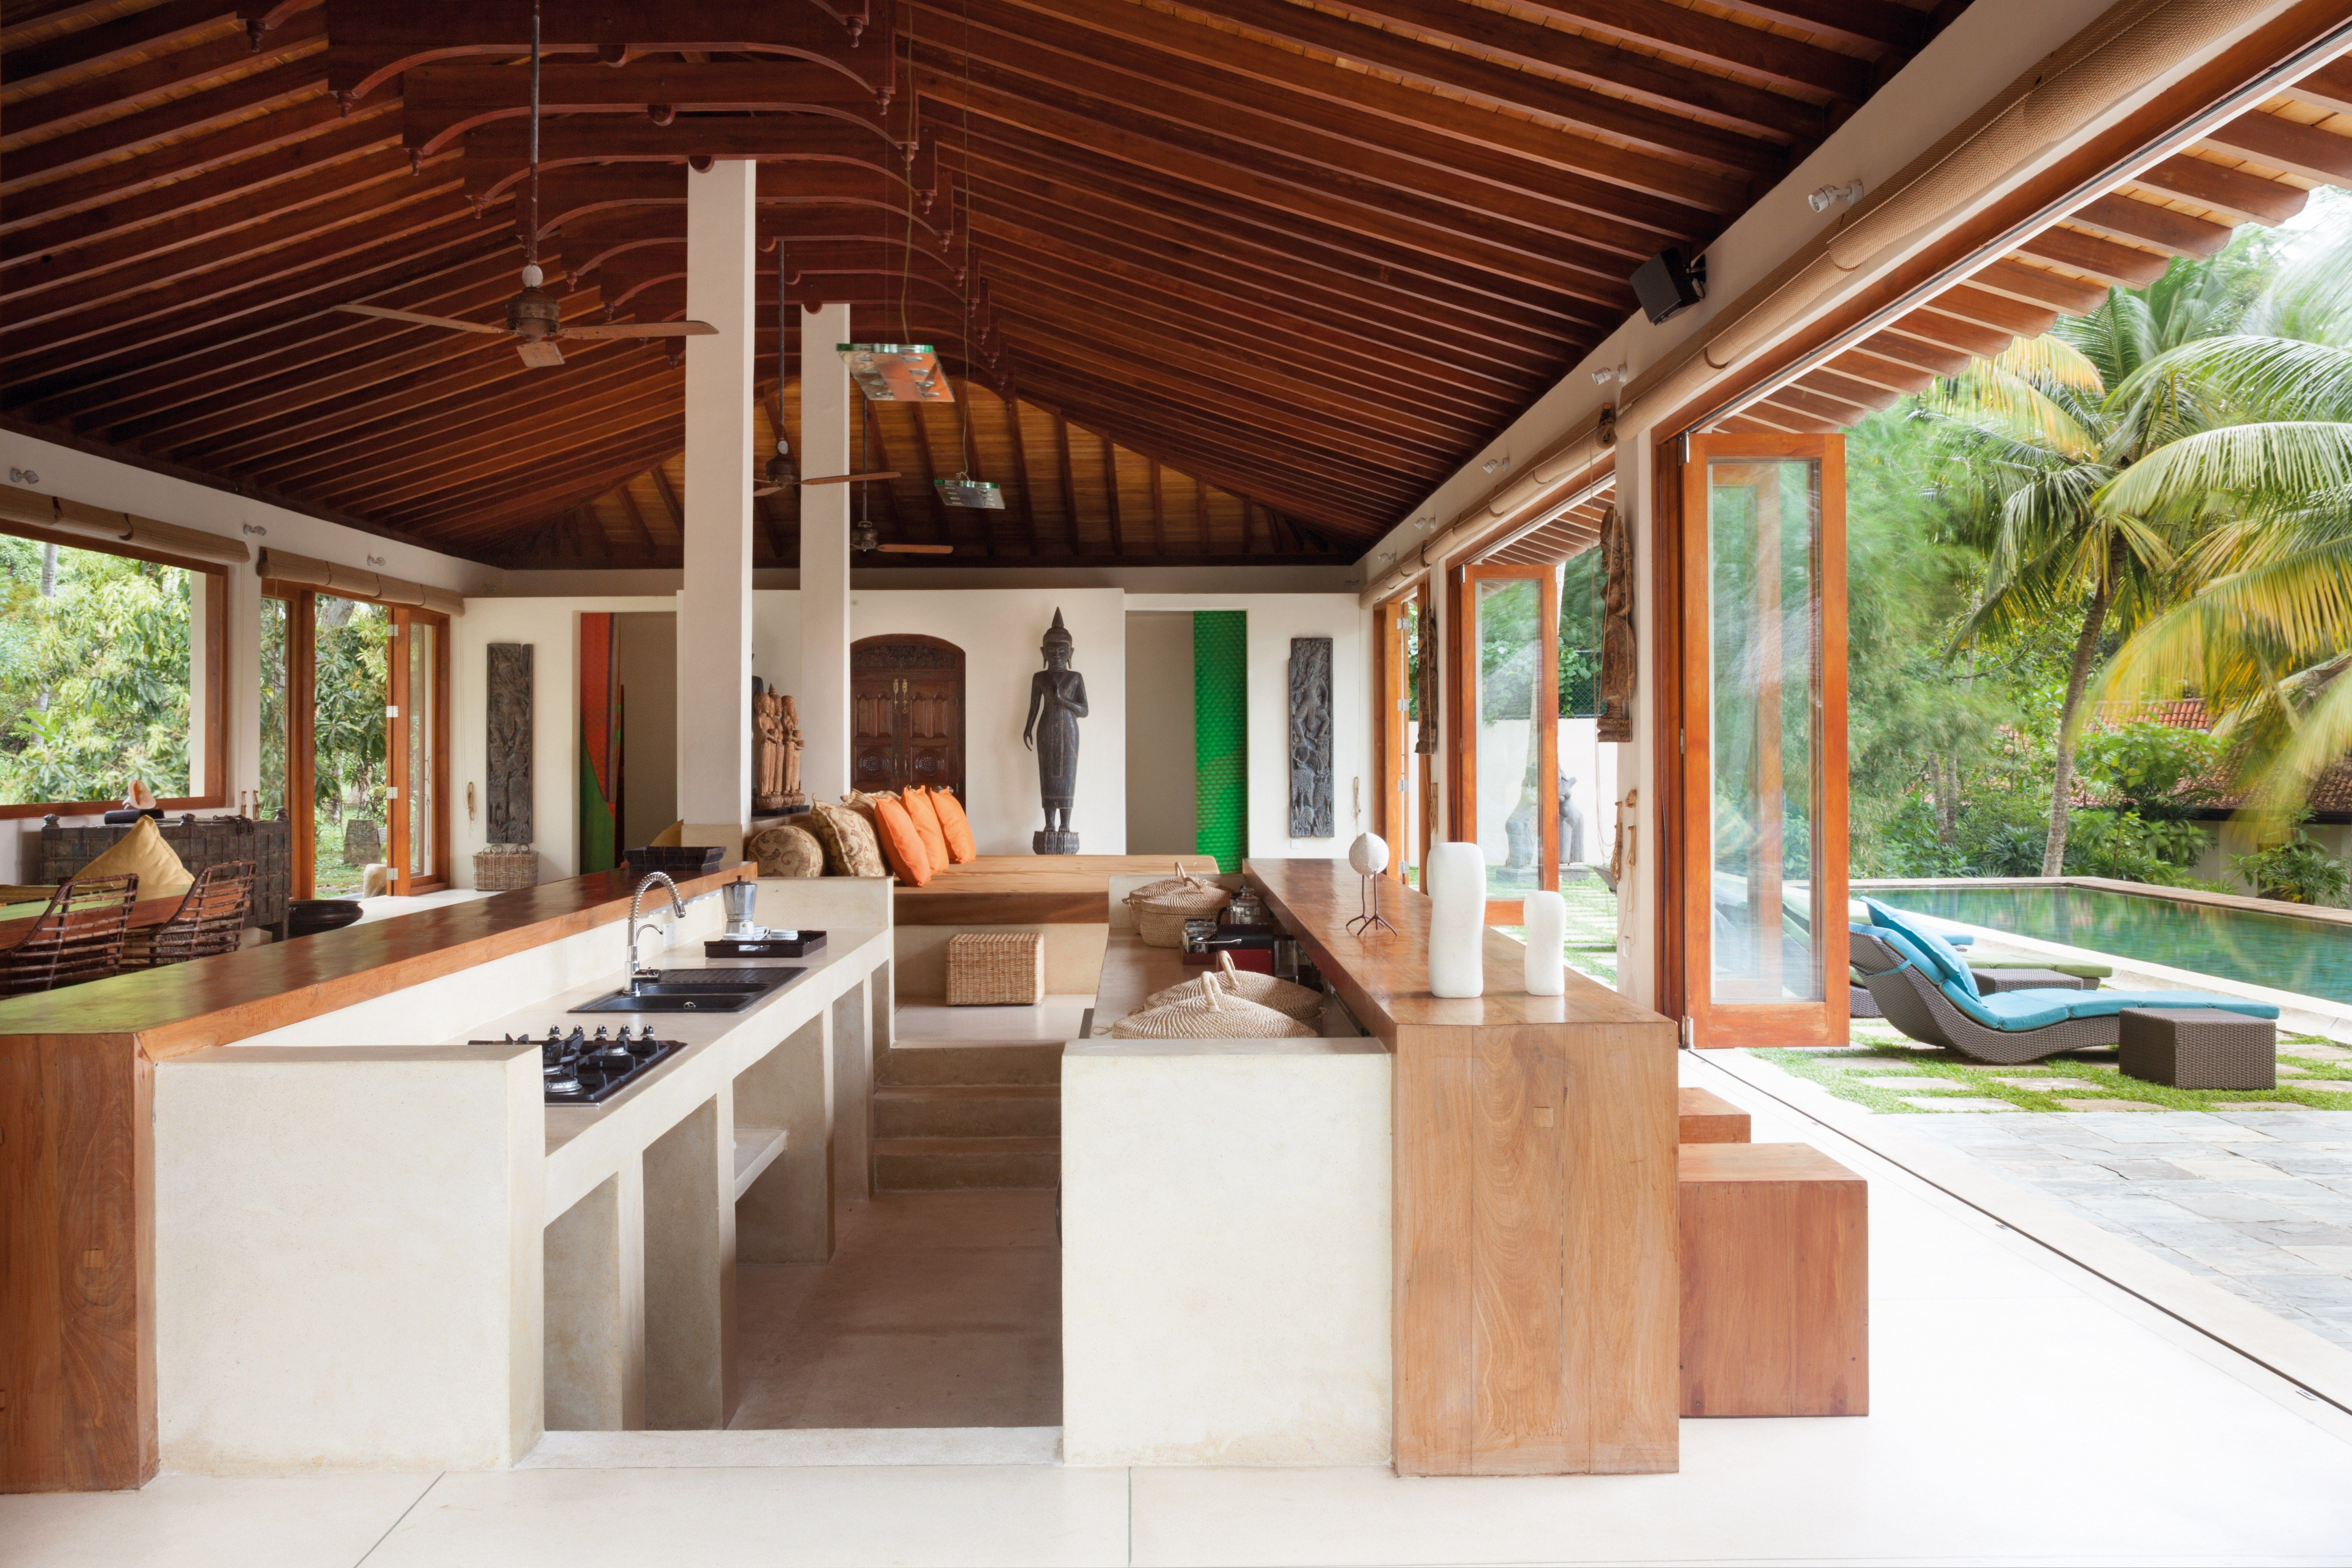 Sri lankan homes that will inspire your vacation house decor photos architectural digest also rh uk pinterest